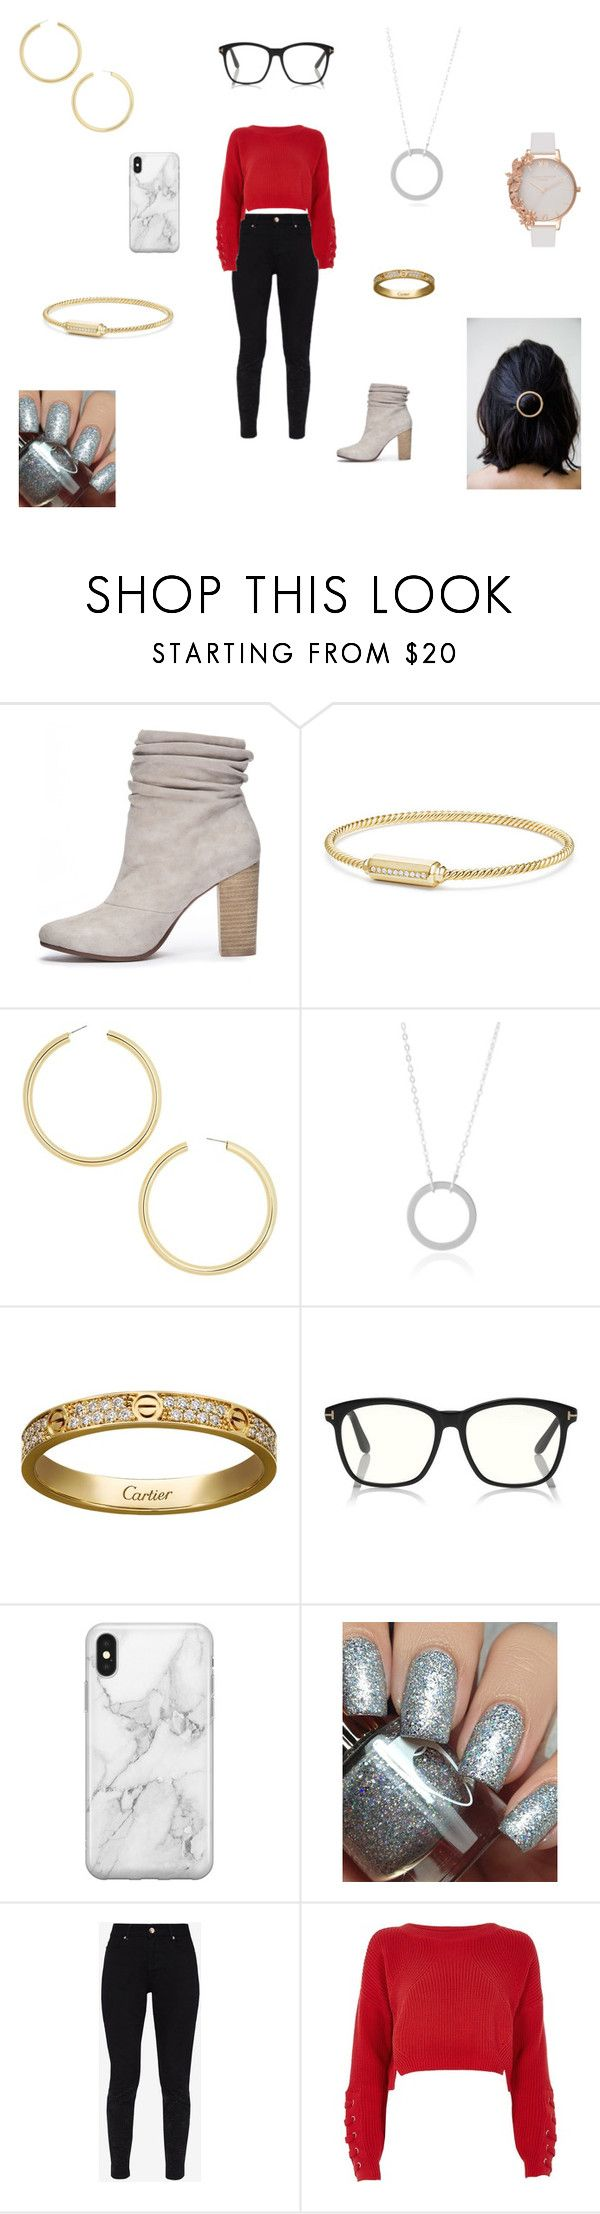 """Marvel - Tony Stark's Daughter (Iron Man)"" by messa2021 ❤ liked on Polyvore featuring Chinese Laundry, David Yurman, BaubleBar, Cartier, Recover, Dimepiece, Ted Baker, River Island and Olivia Burton"